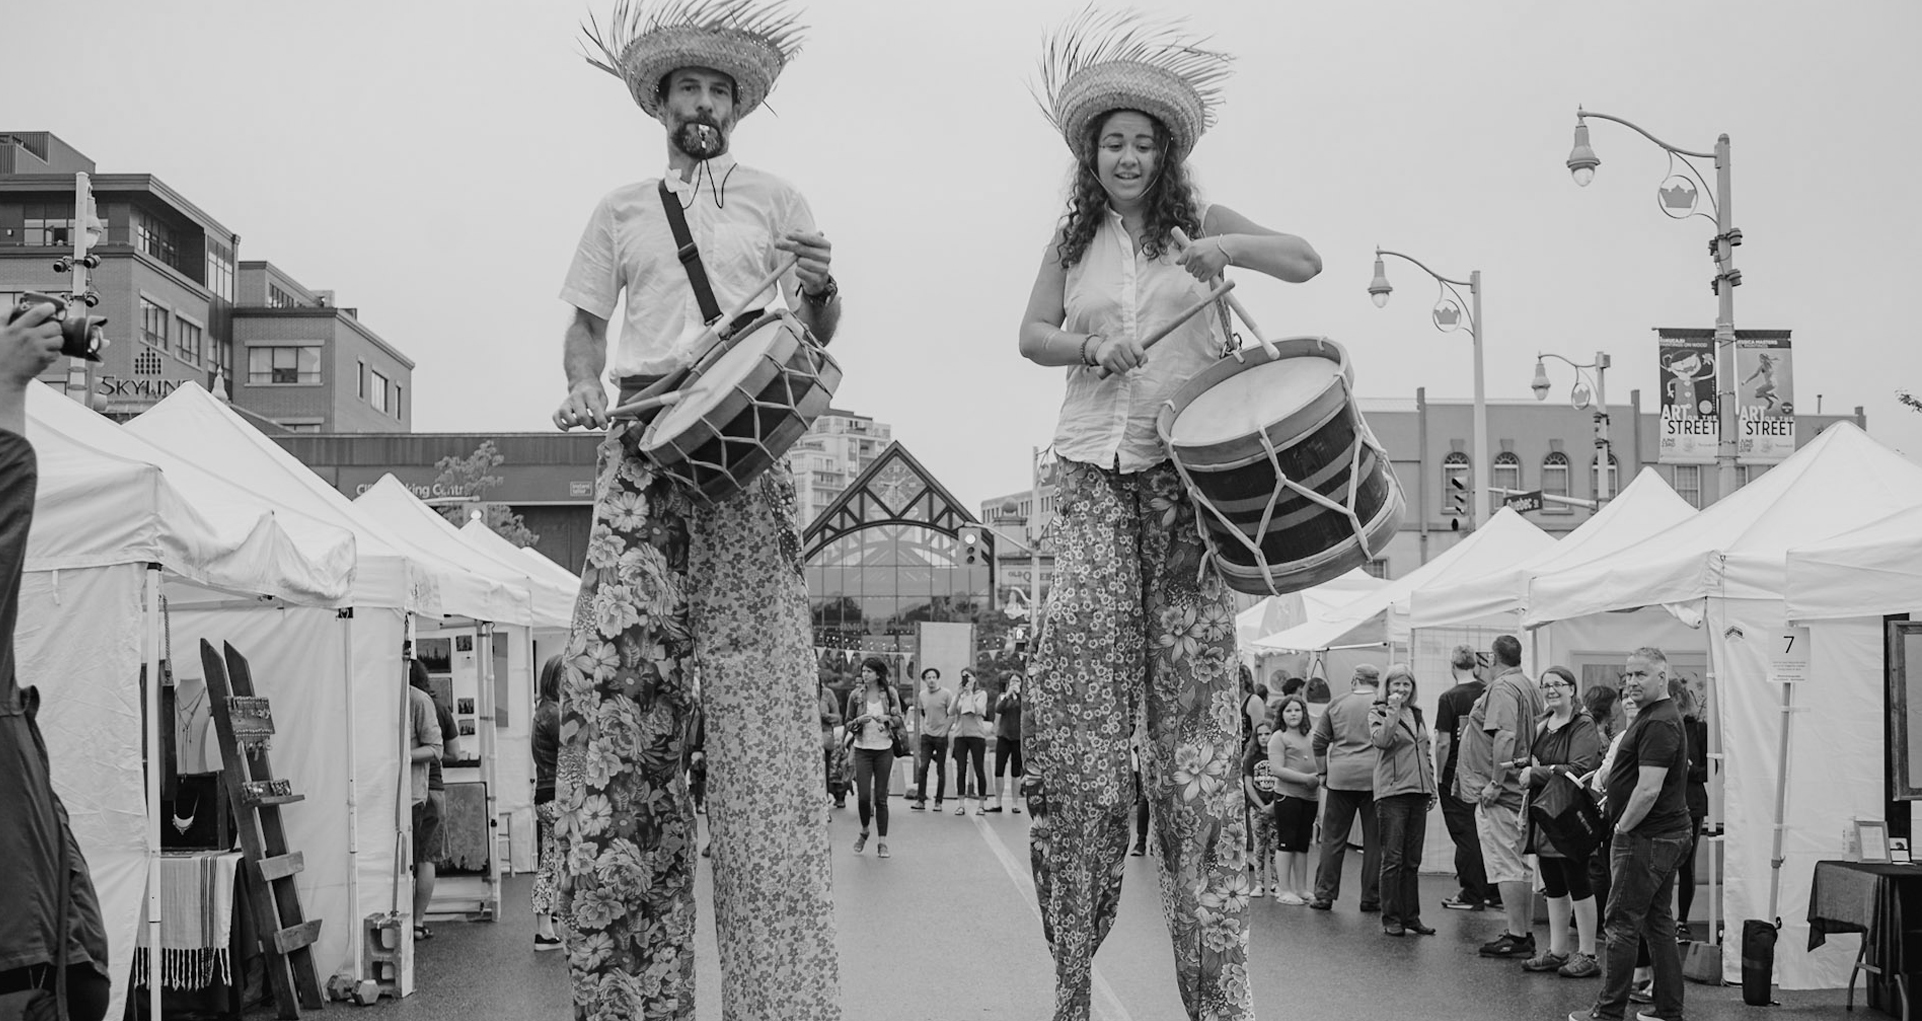 performers playing drums on stilts